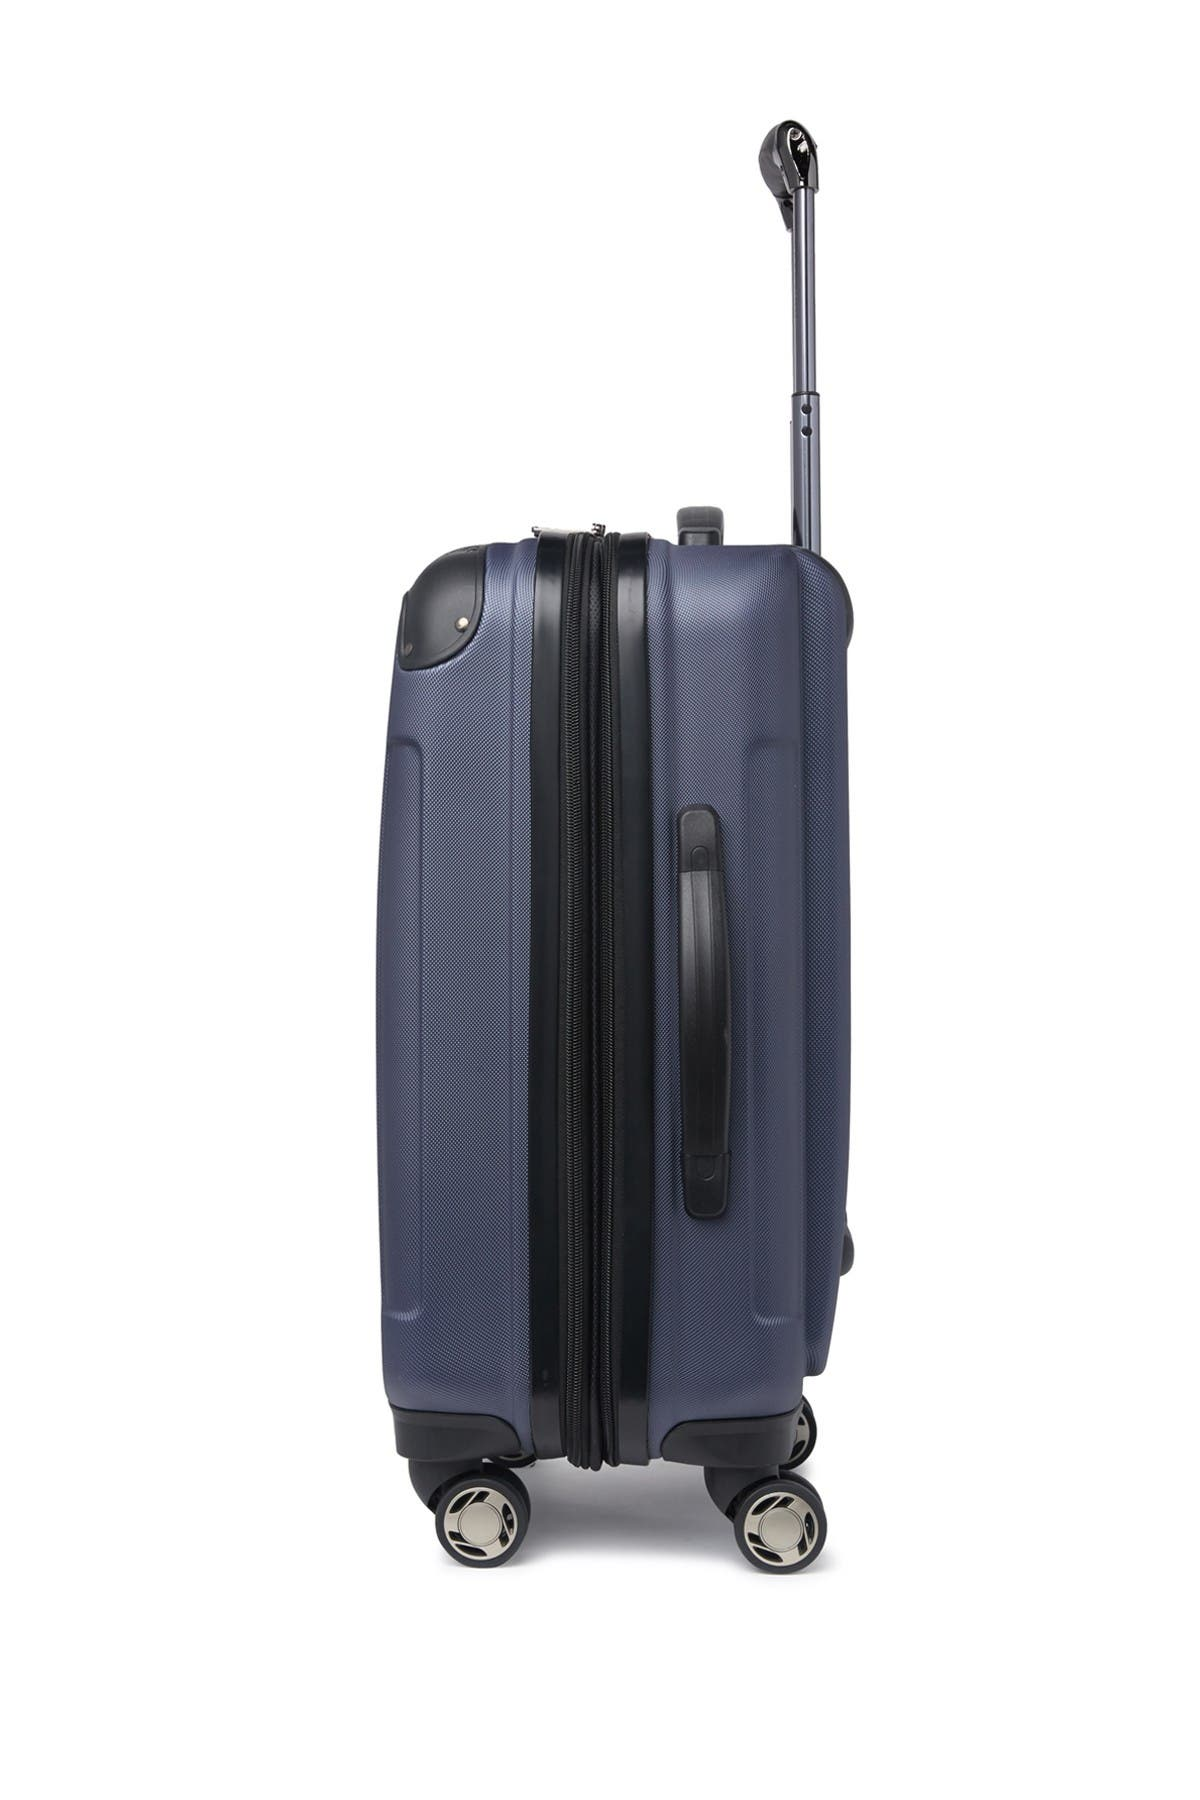 Image of KENNETH COLE Renegade Expandable ABS 8 Wheel Suitcase